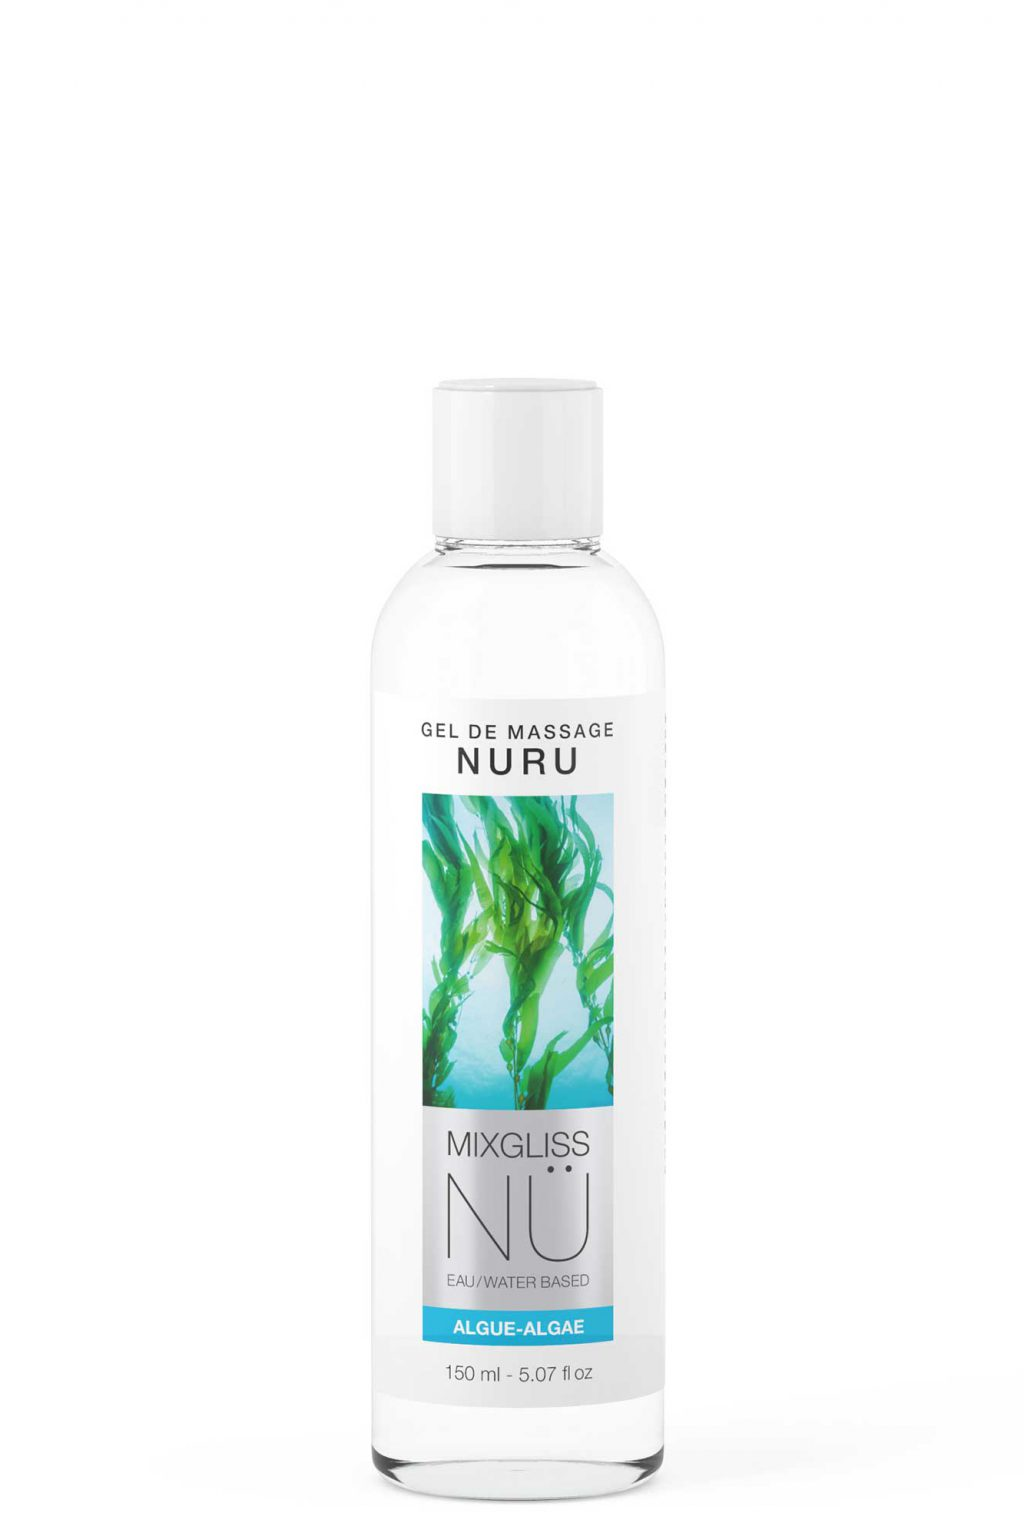 Nuru NU Algue-Algae